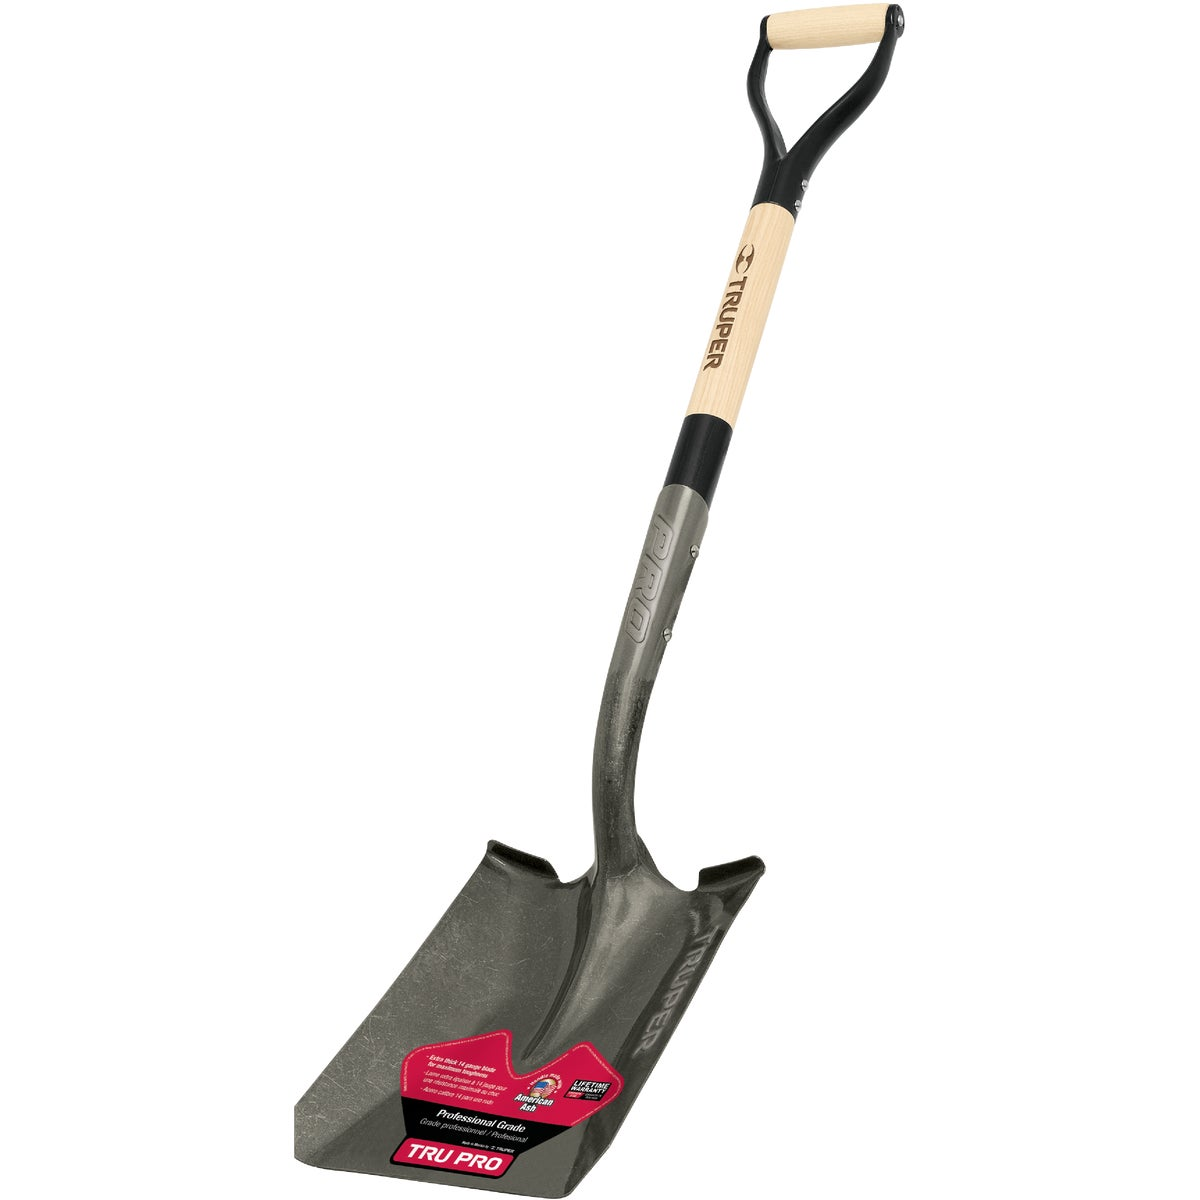 D-HDL SQ PT SHOVEL